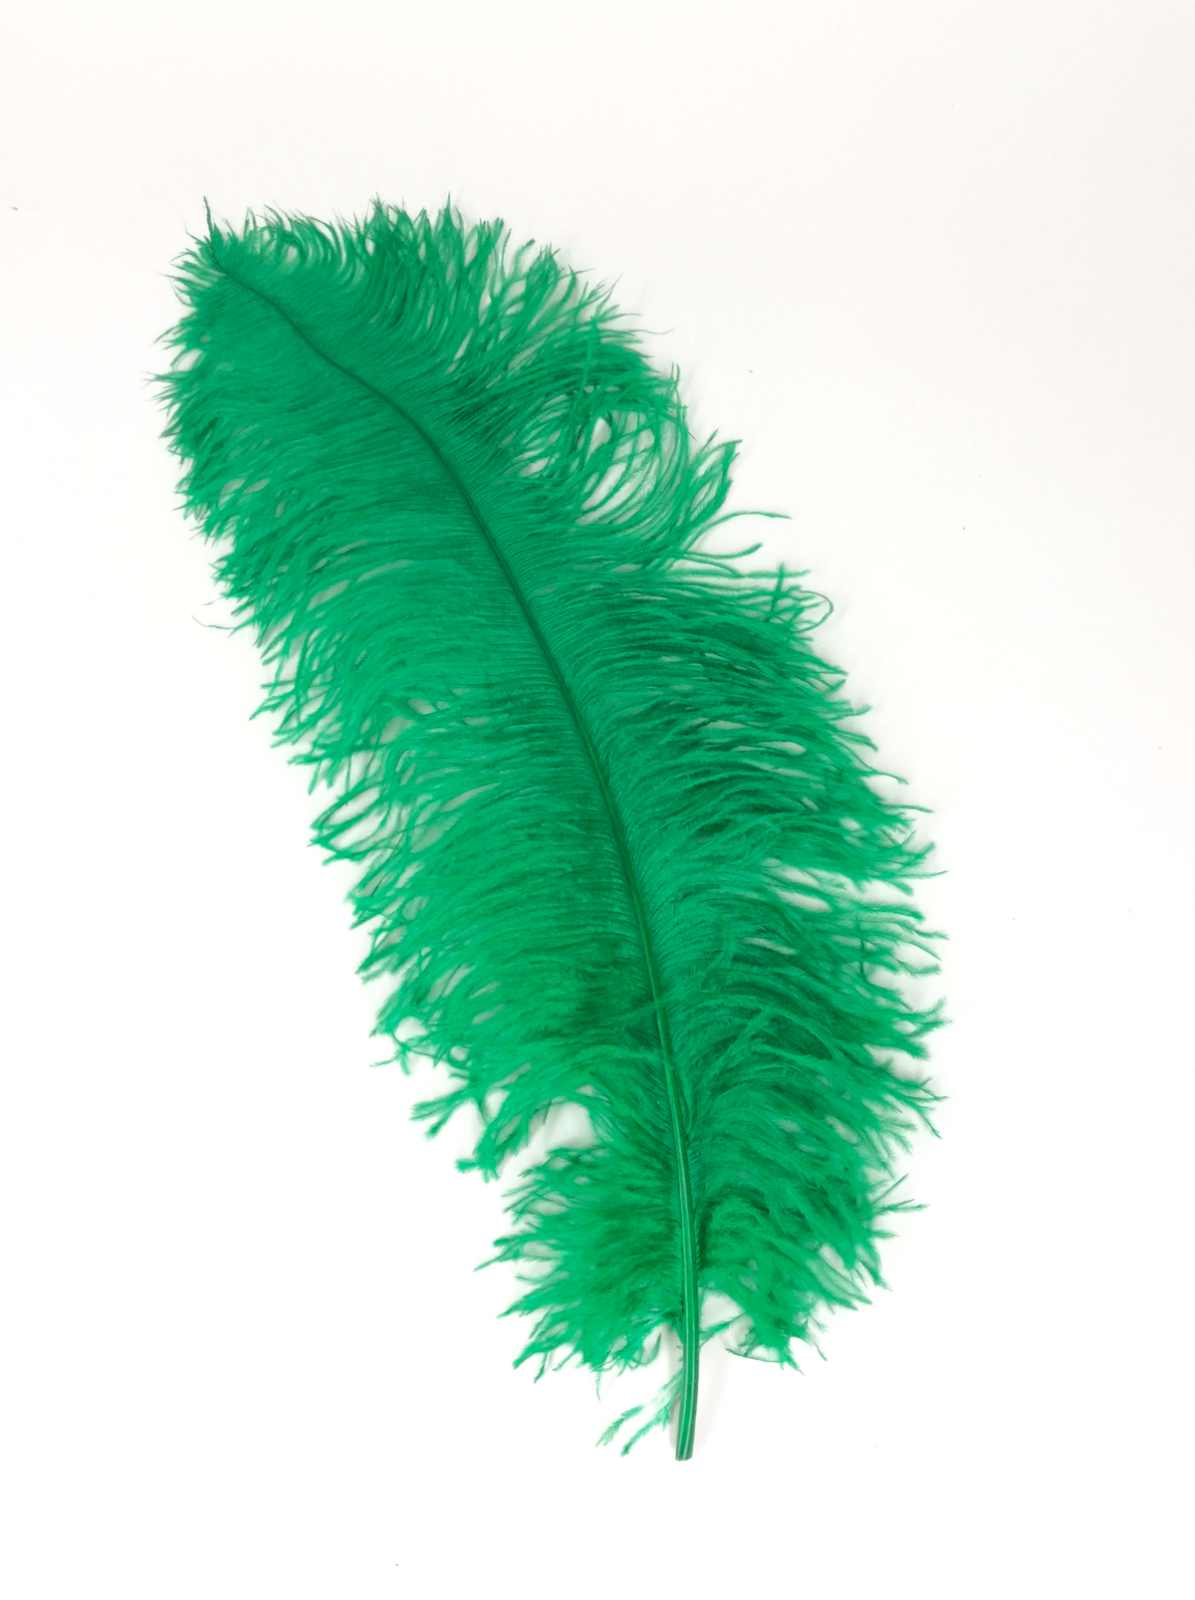 Ostrich Feather PlusPng.com  - Ostrich Feather PNG